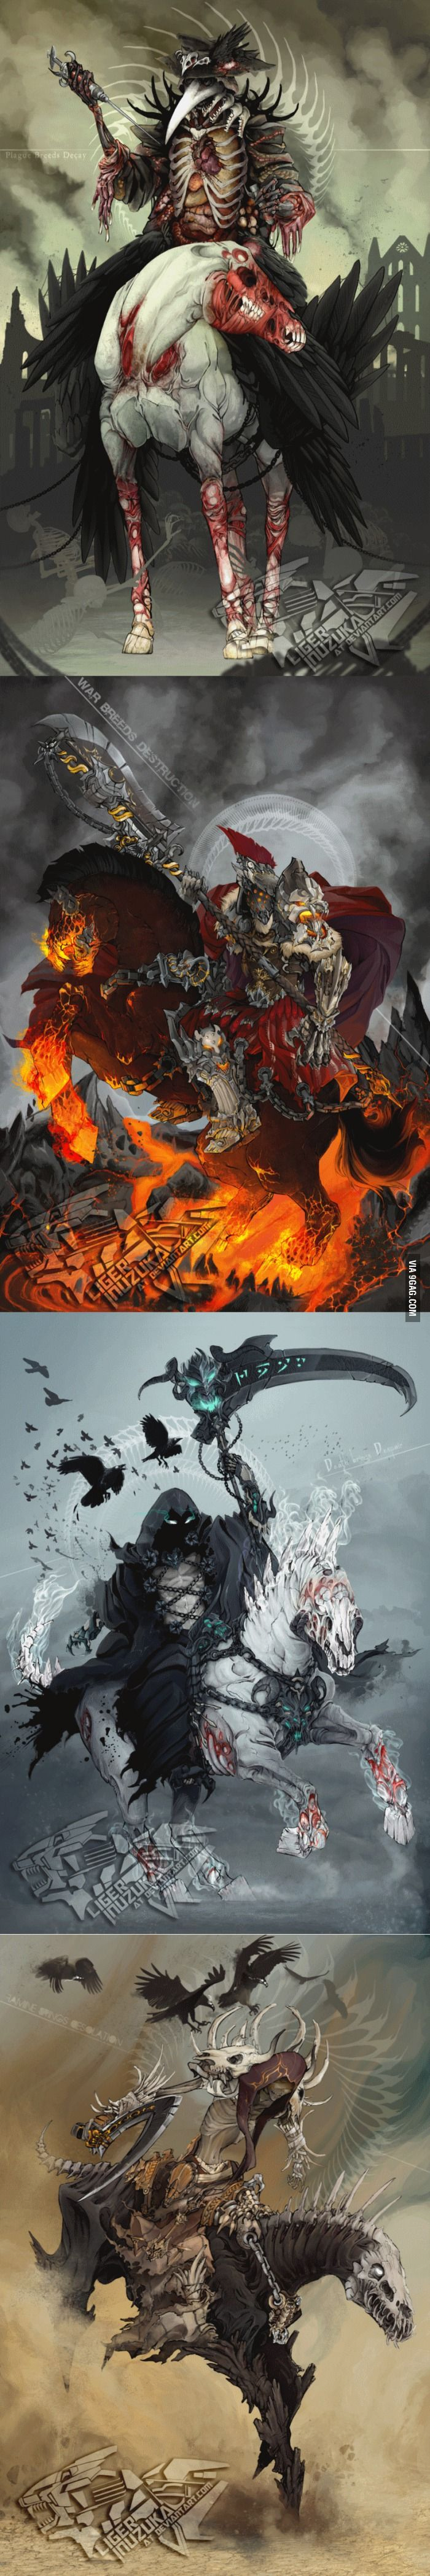 Pestilence, War, Death, and Famine: the Four Horsemen of the Apocalypse. Also, is that some Dragon script from Skyrim on Death's scythe...?